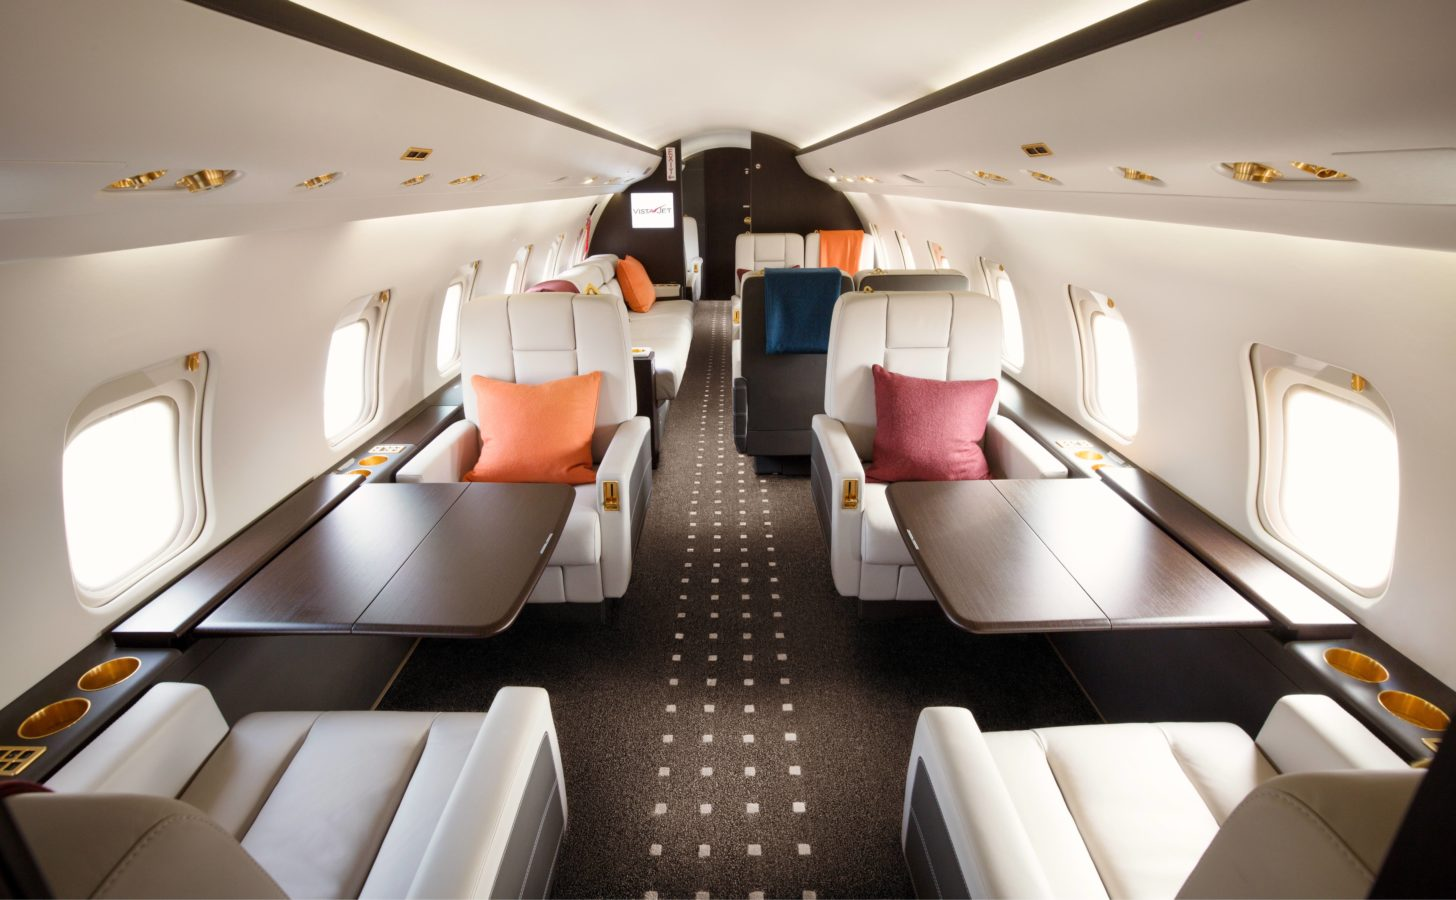 The 7 Luxury Destinations to Fly Privately and Safely to With Vistajet